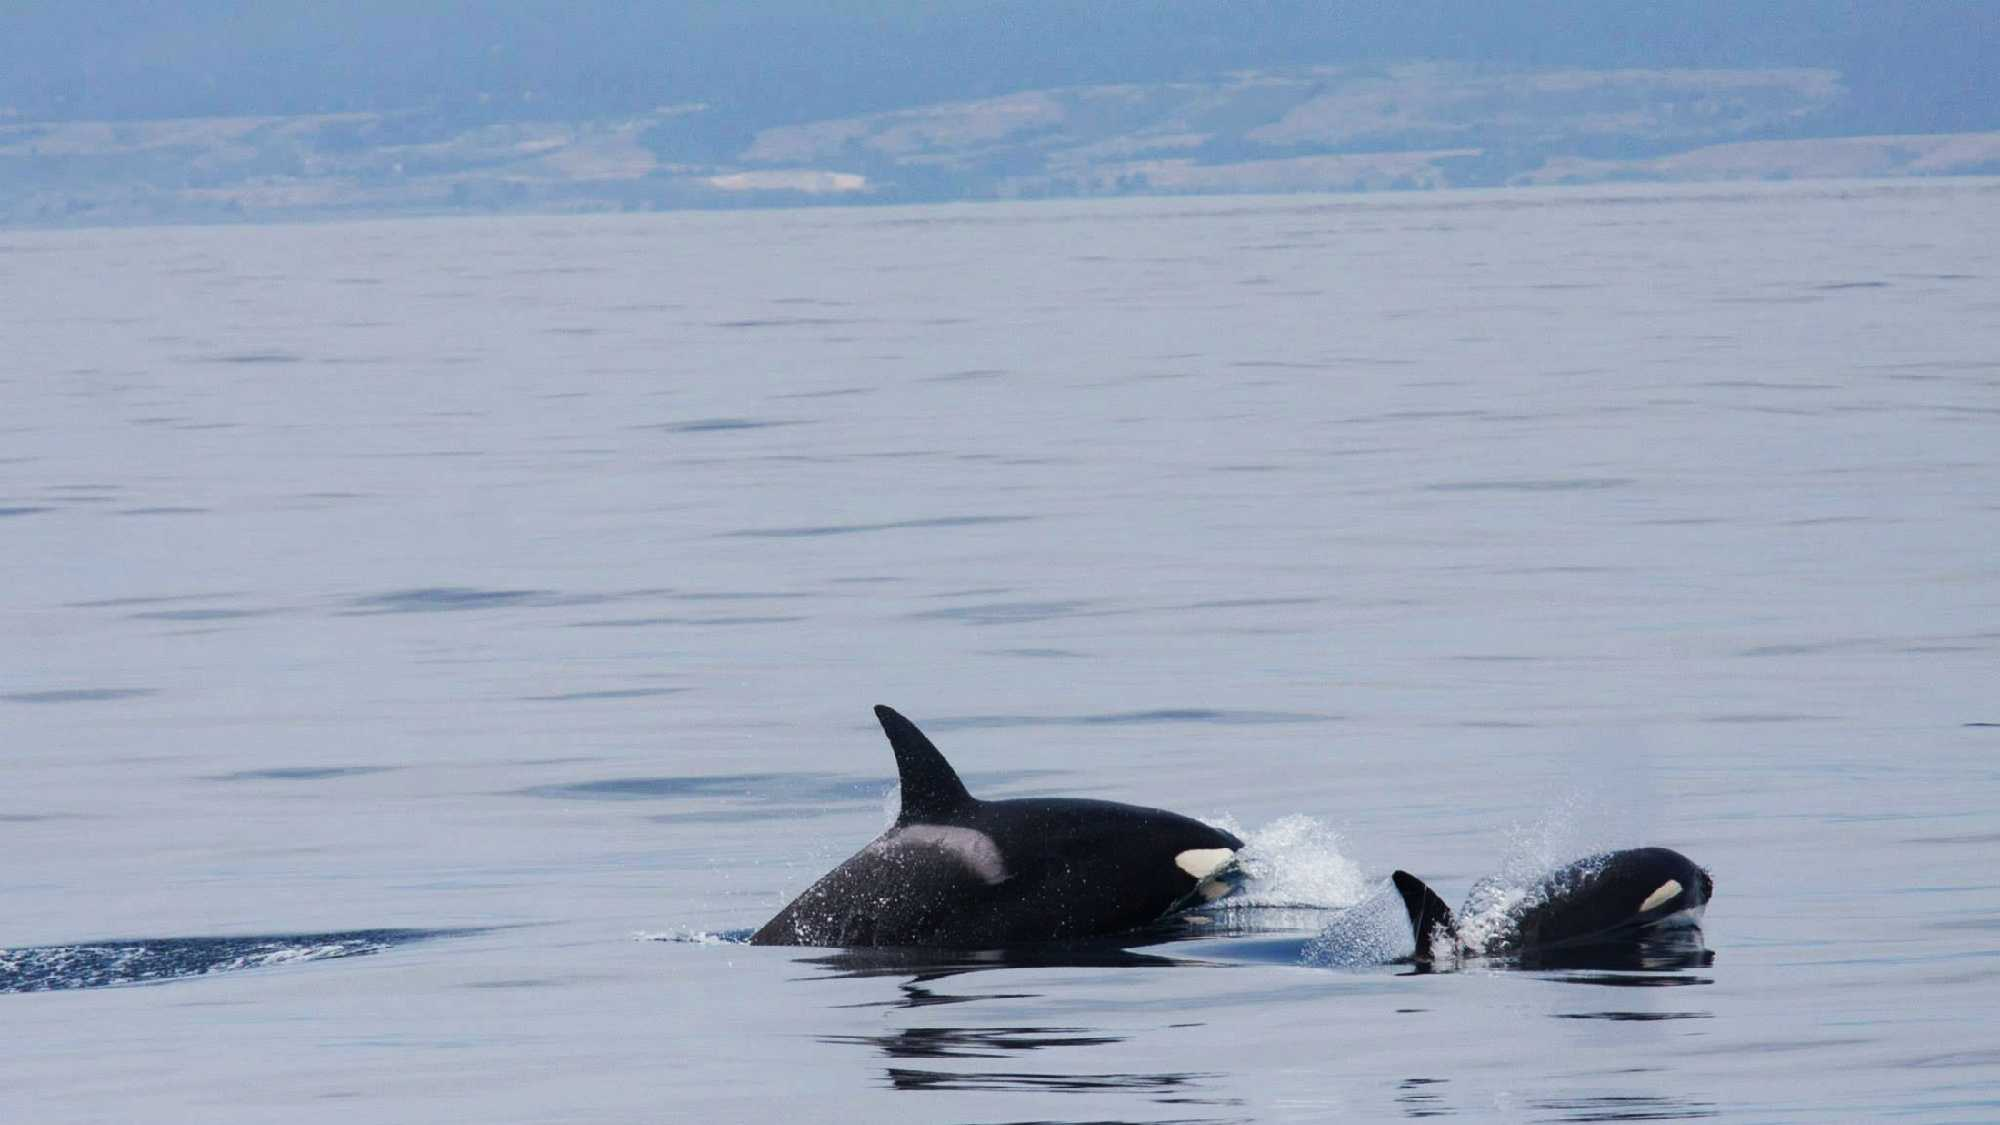 Life for orca whales outside of SeaWorld, like these two swimming through the Monterey Bay, is far different.